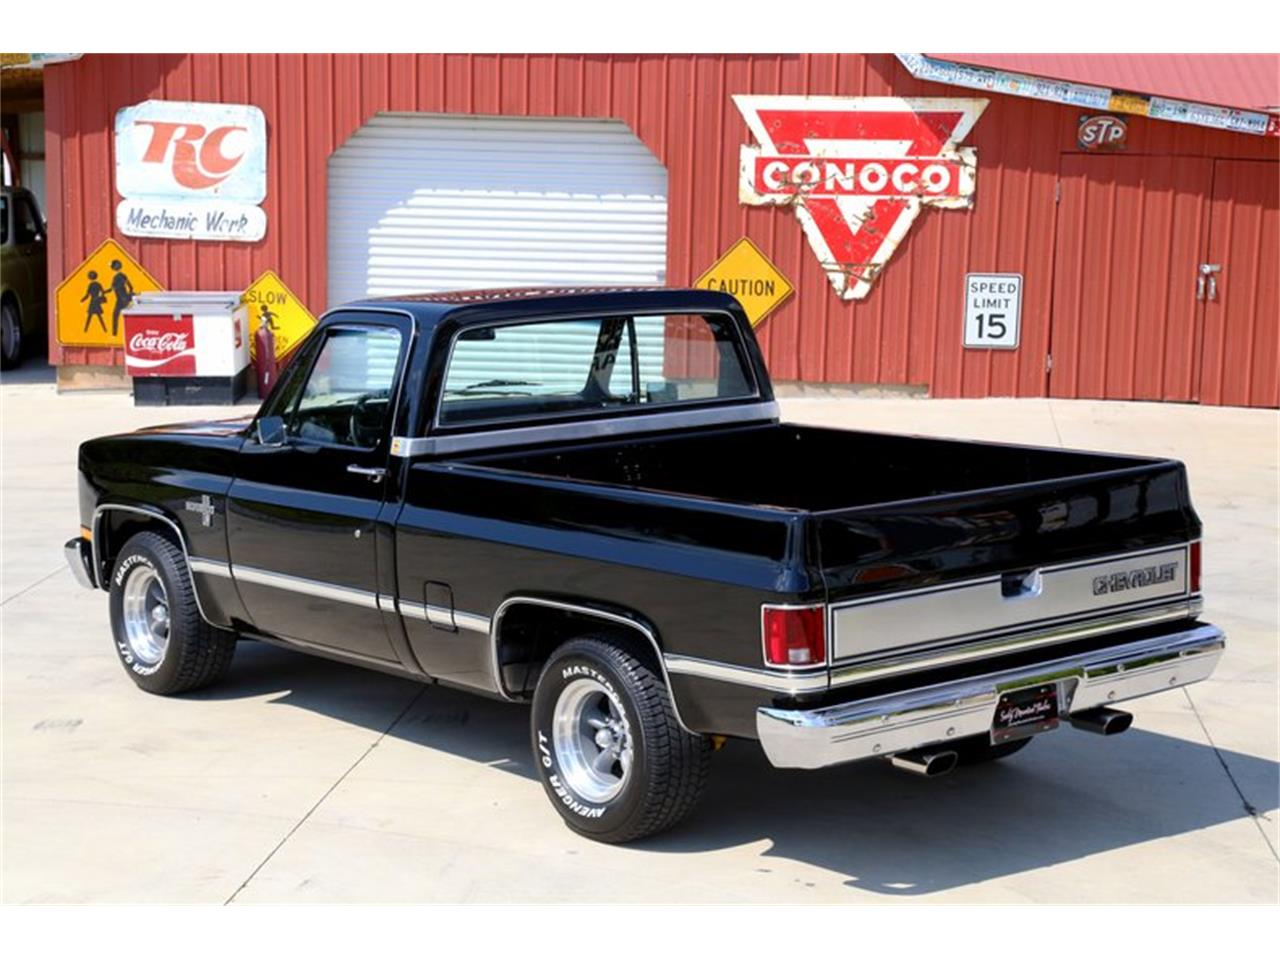 Large Picture of '81 C10 located in Tennessee - $27,995.00 - OO35